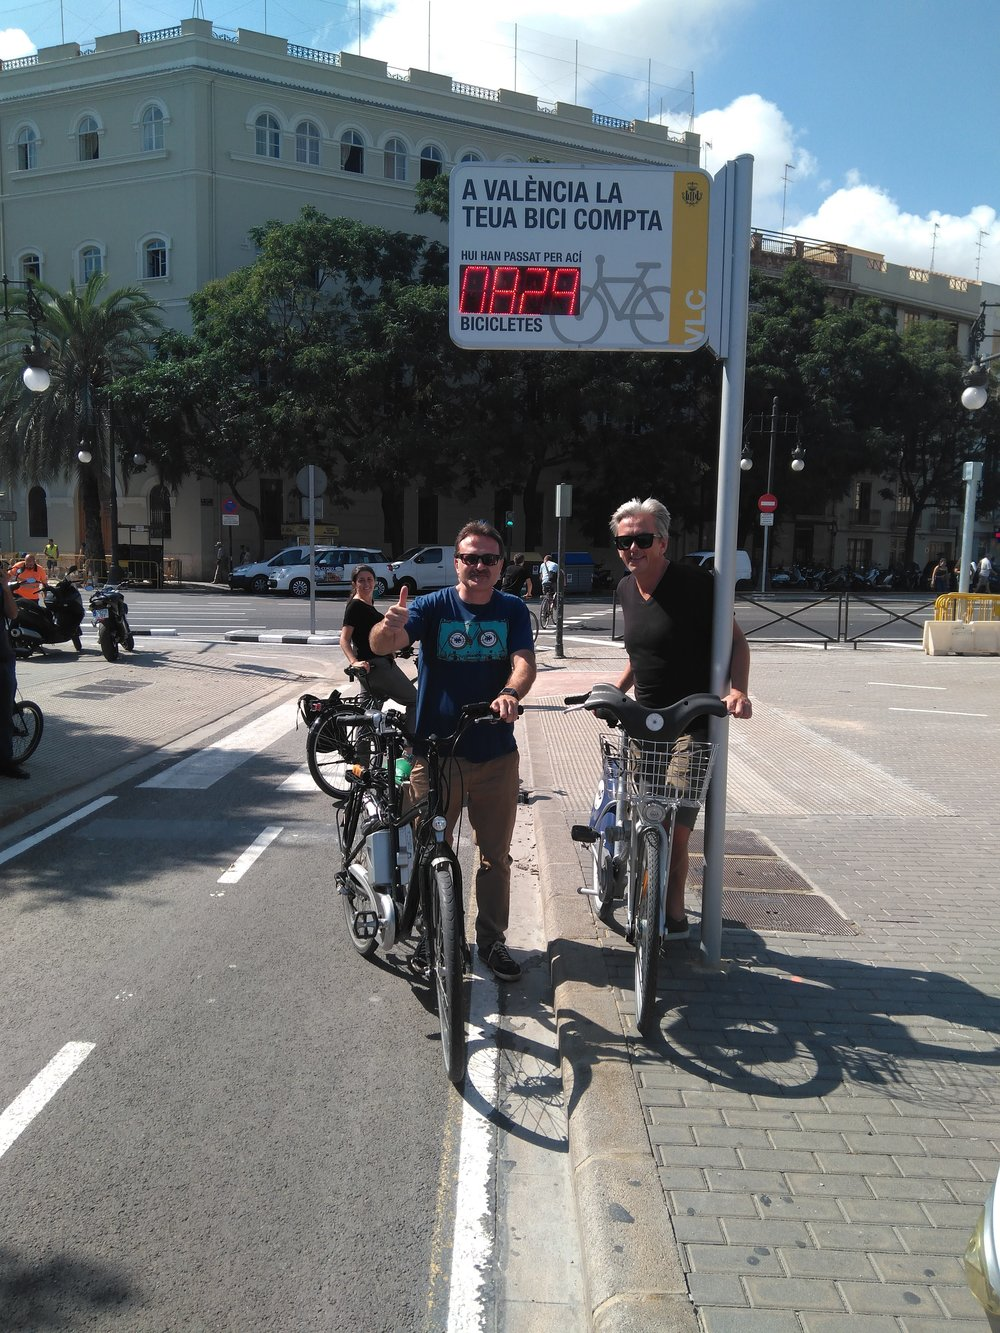 The City of Valencia has installed bicycle counters, like the one pictured here.